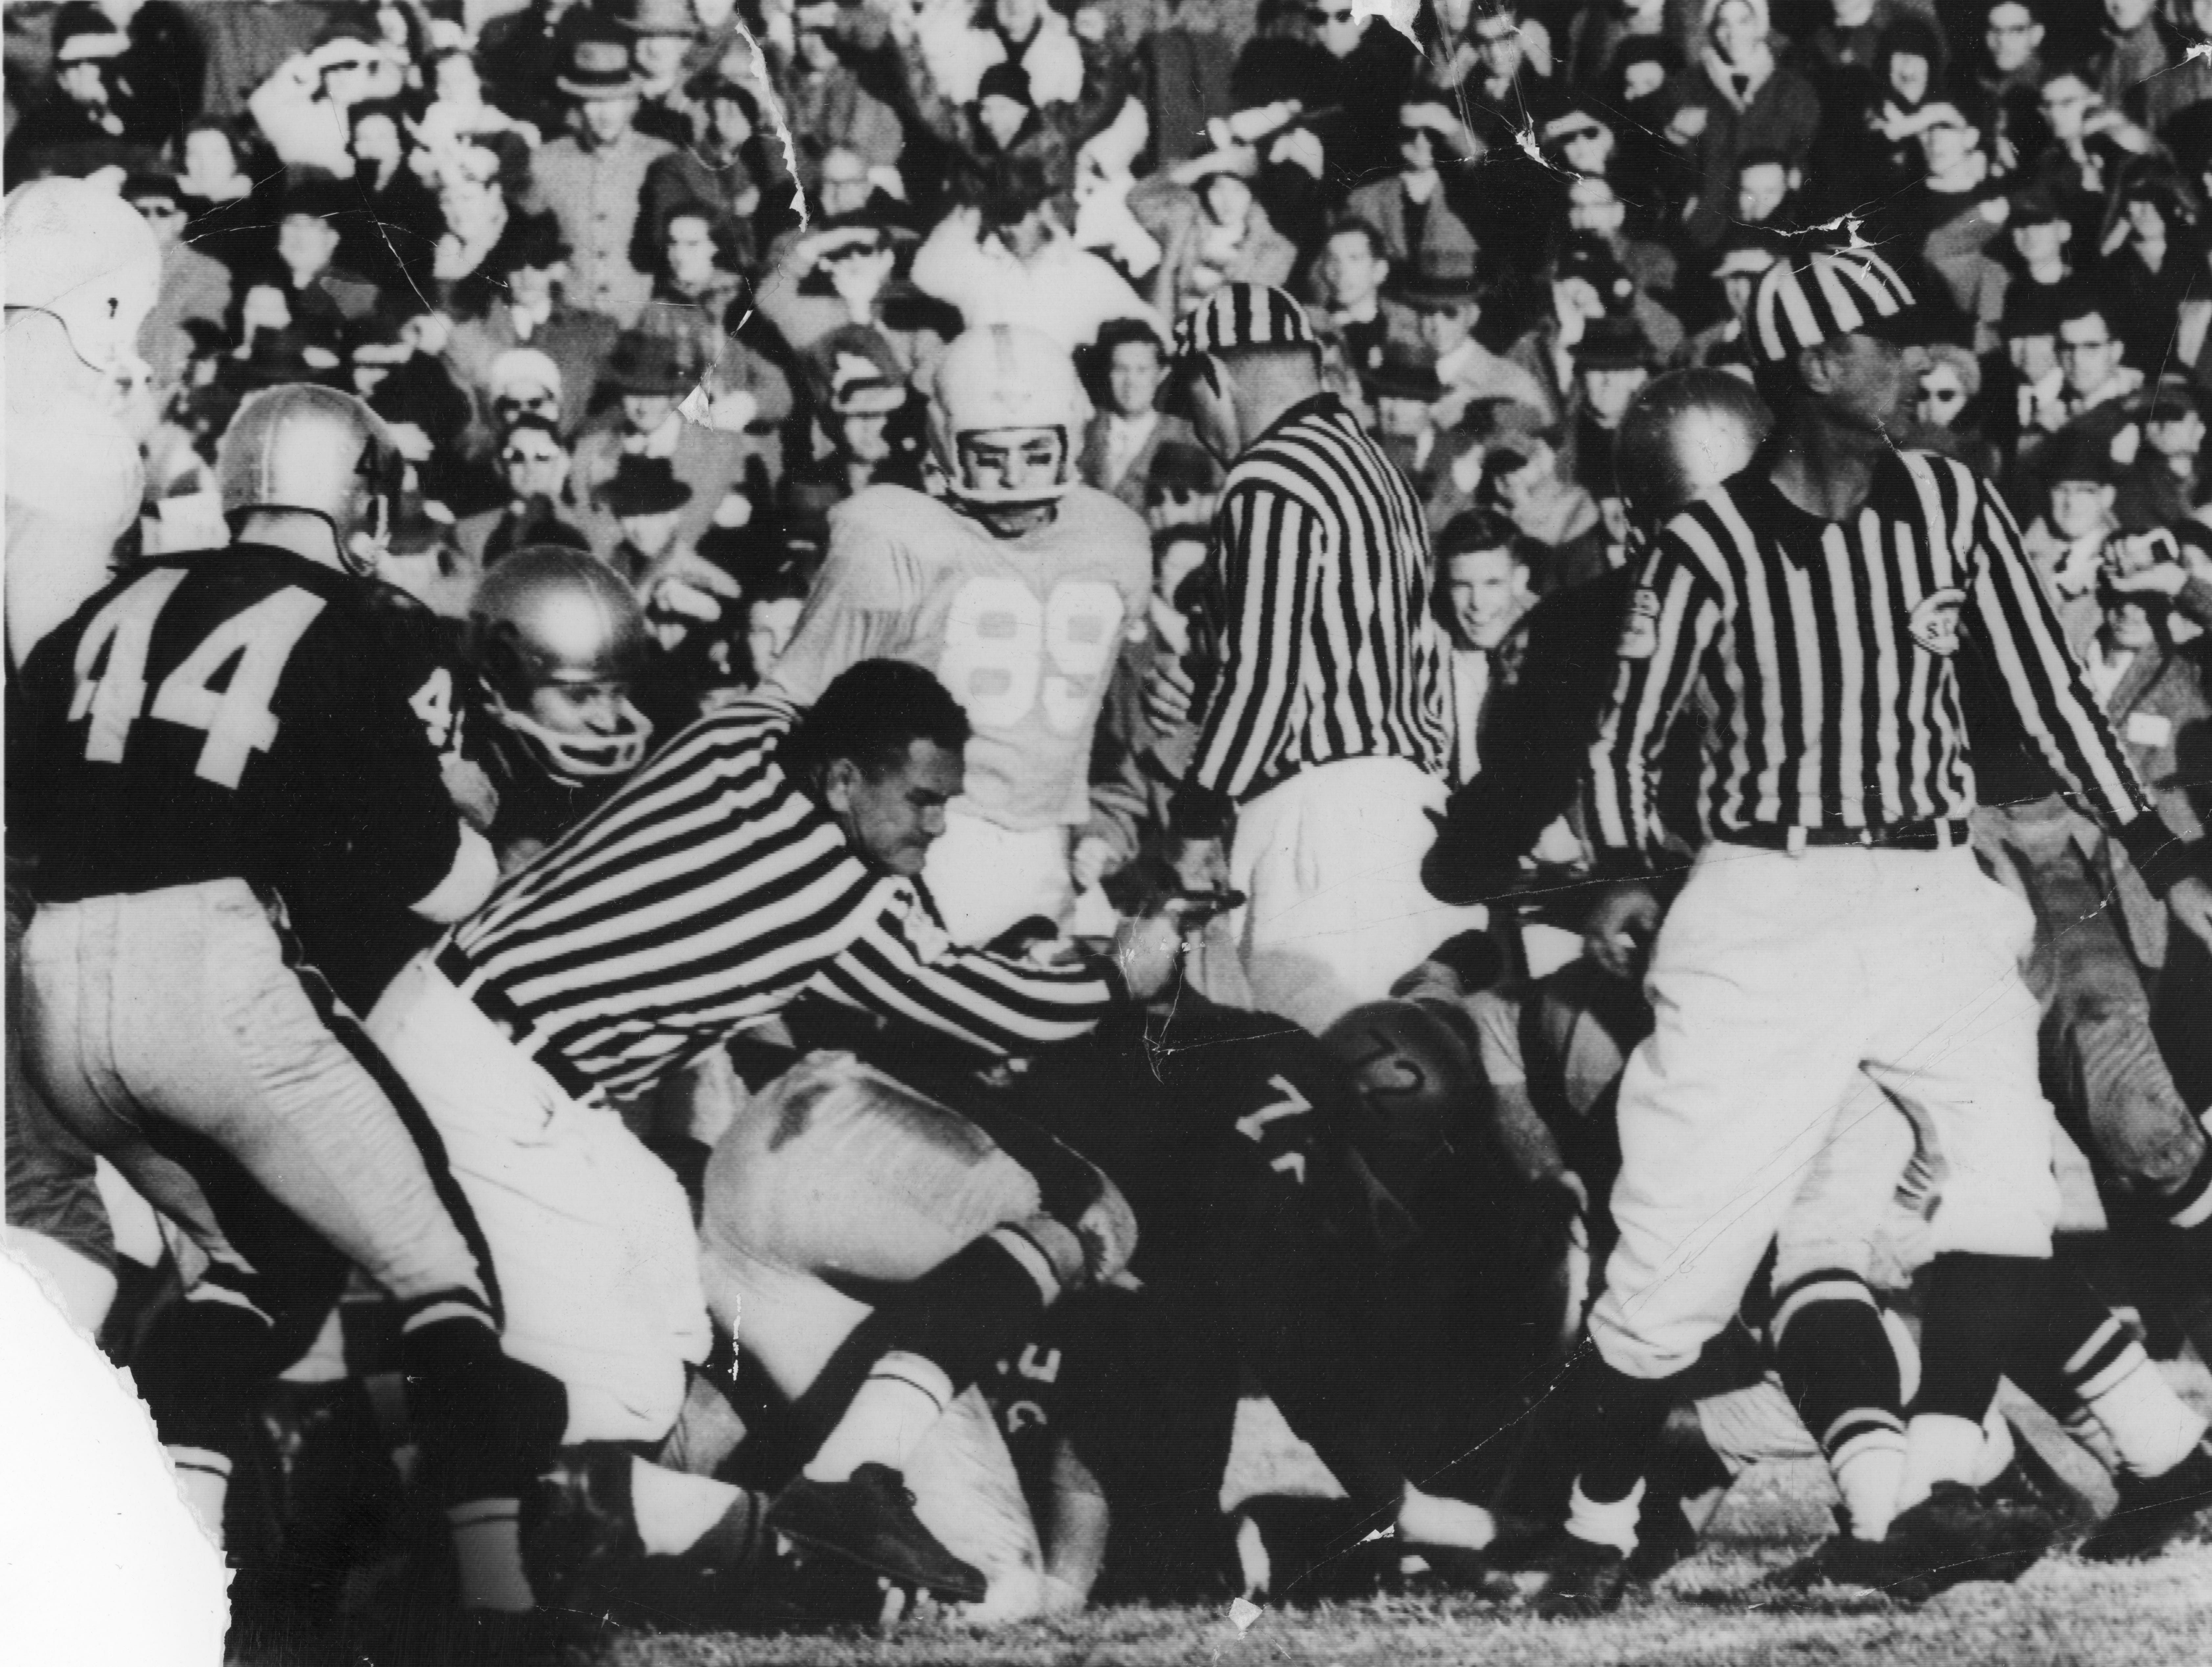 Tom Redmond (72), Ross Morris (44) and Don Deck (89) during action against Vanderbilt on November 30, 1958.